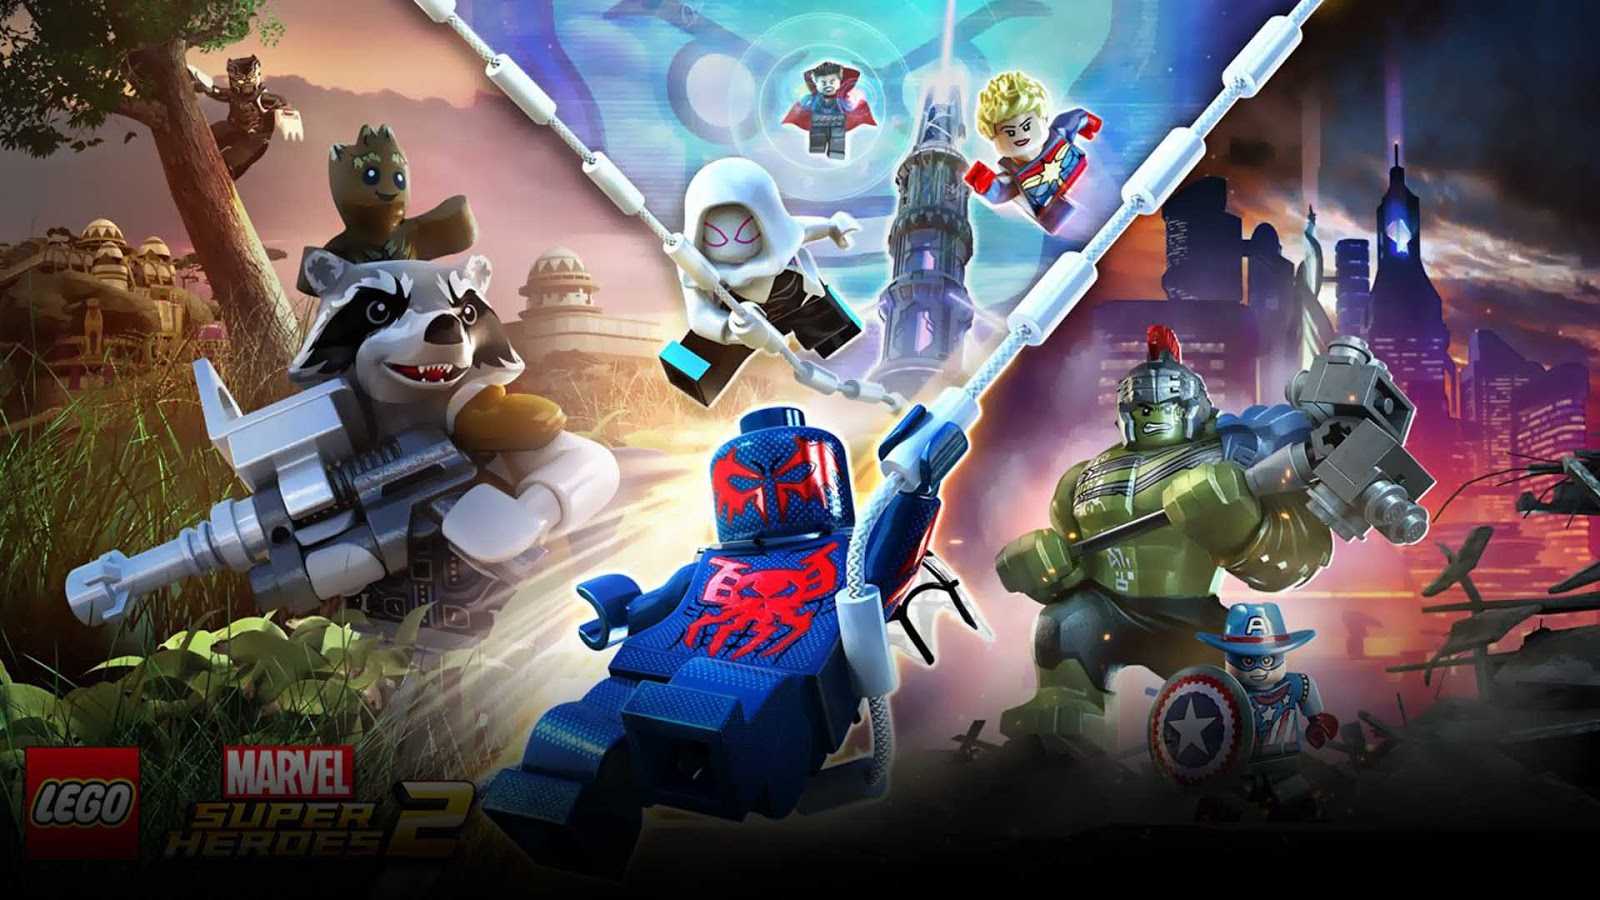 Lego Marvel Super Heroes 2 Hd Wallpapers Read Games Review Play